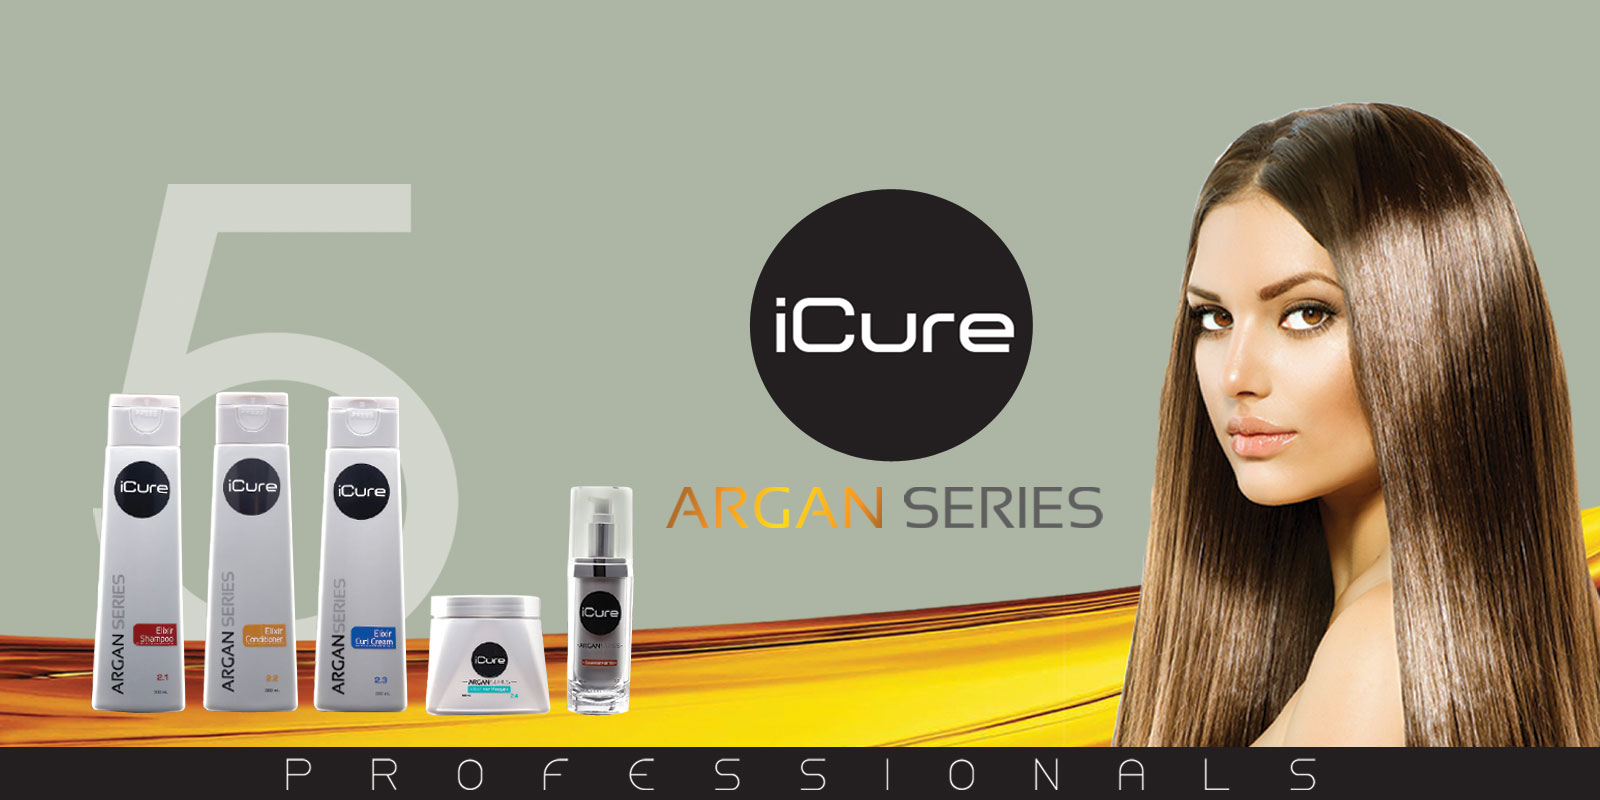 iCure Argan Series